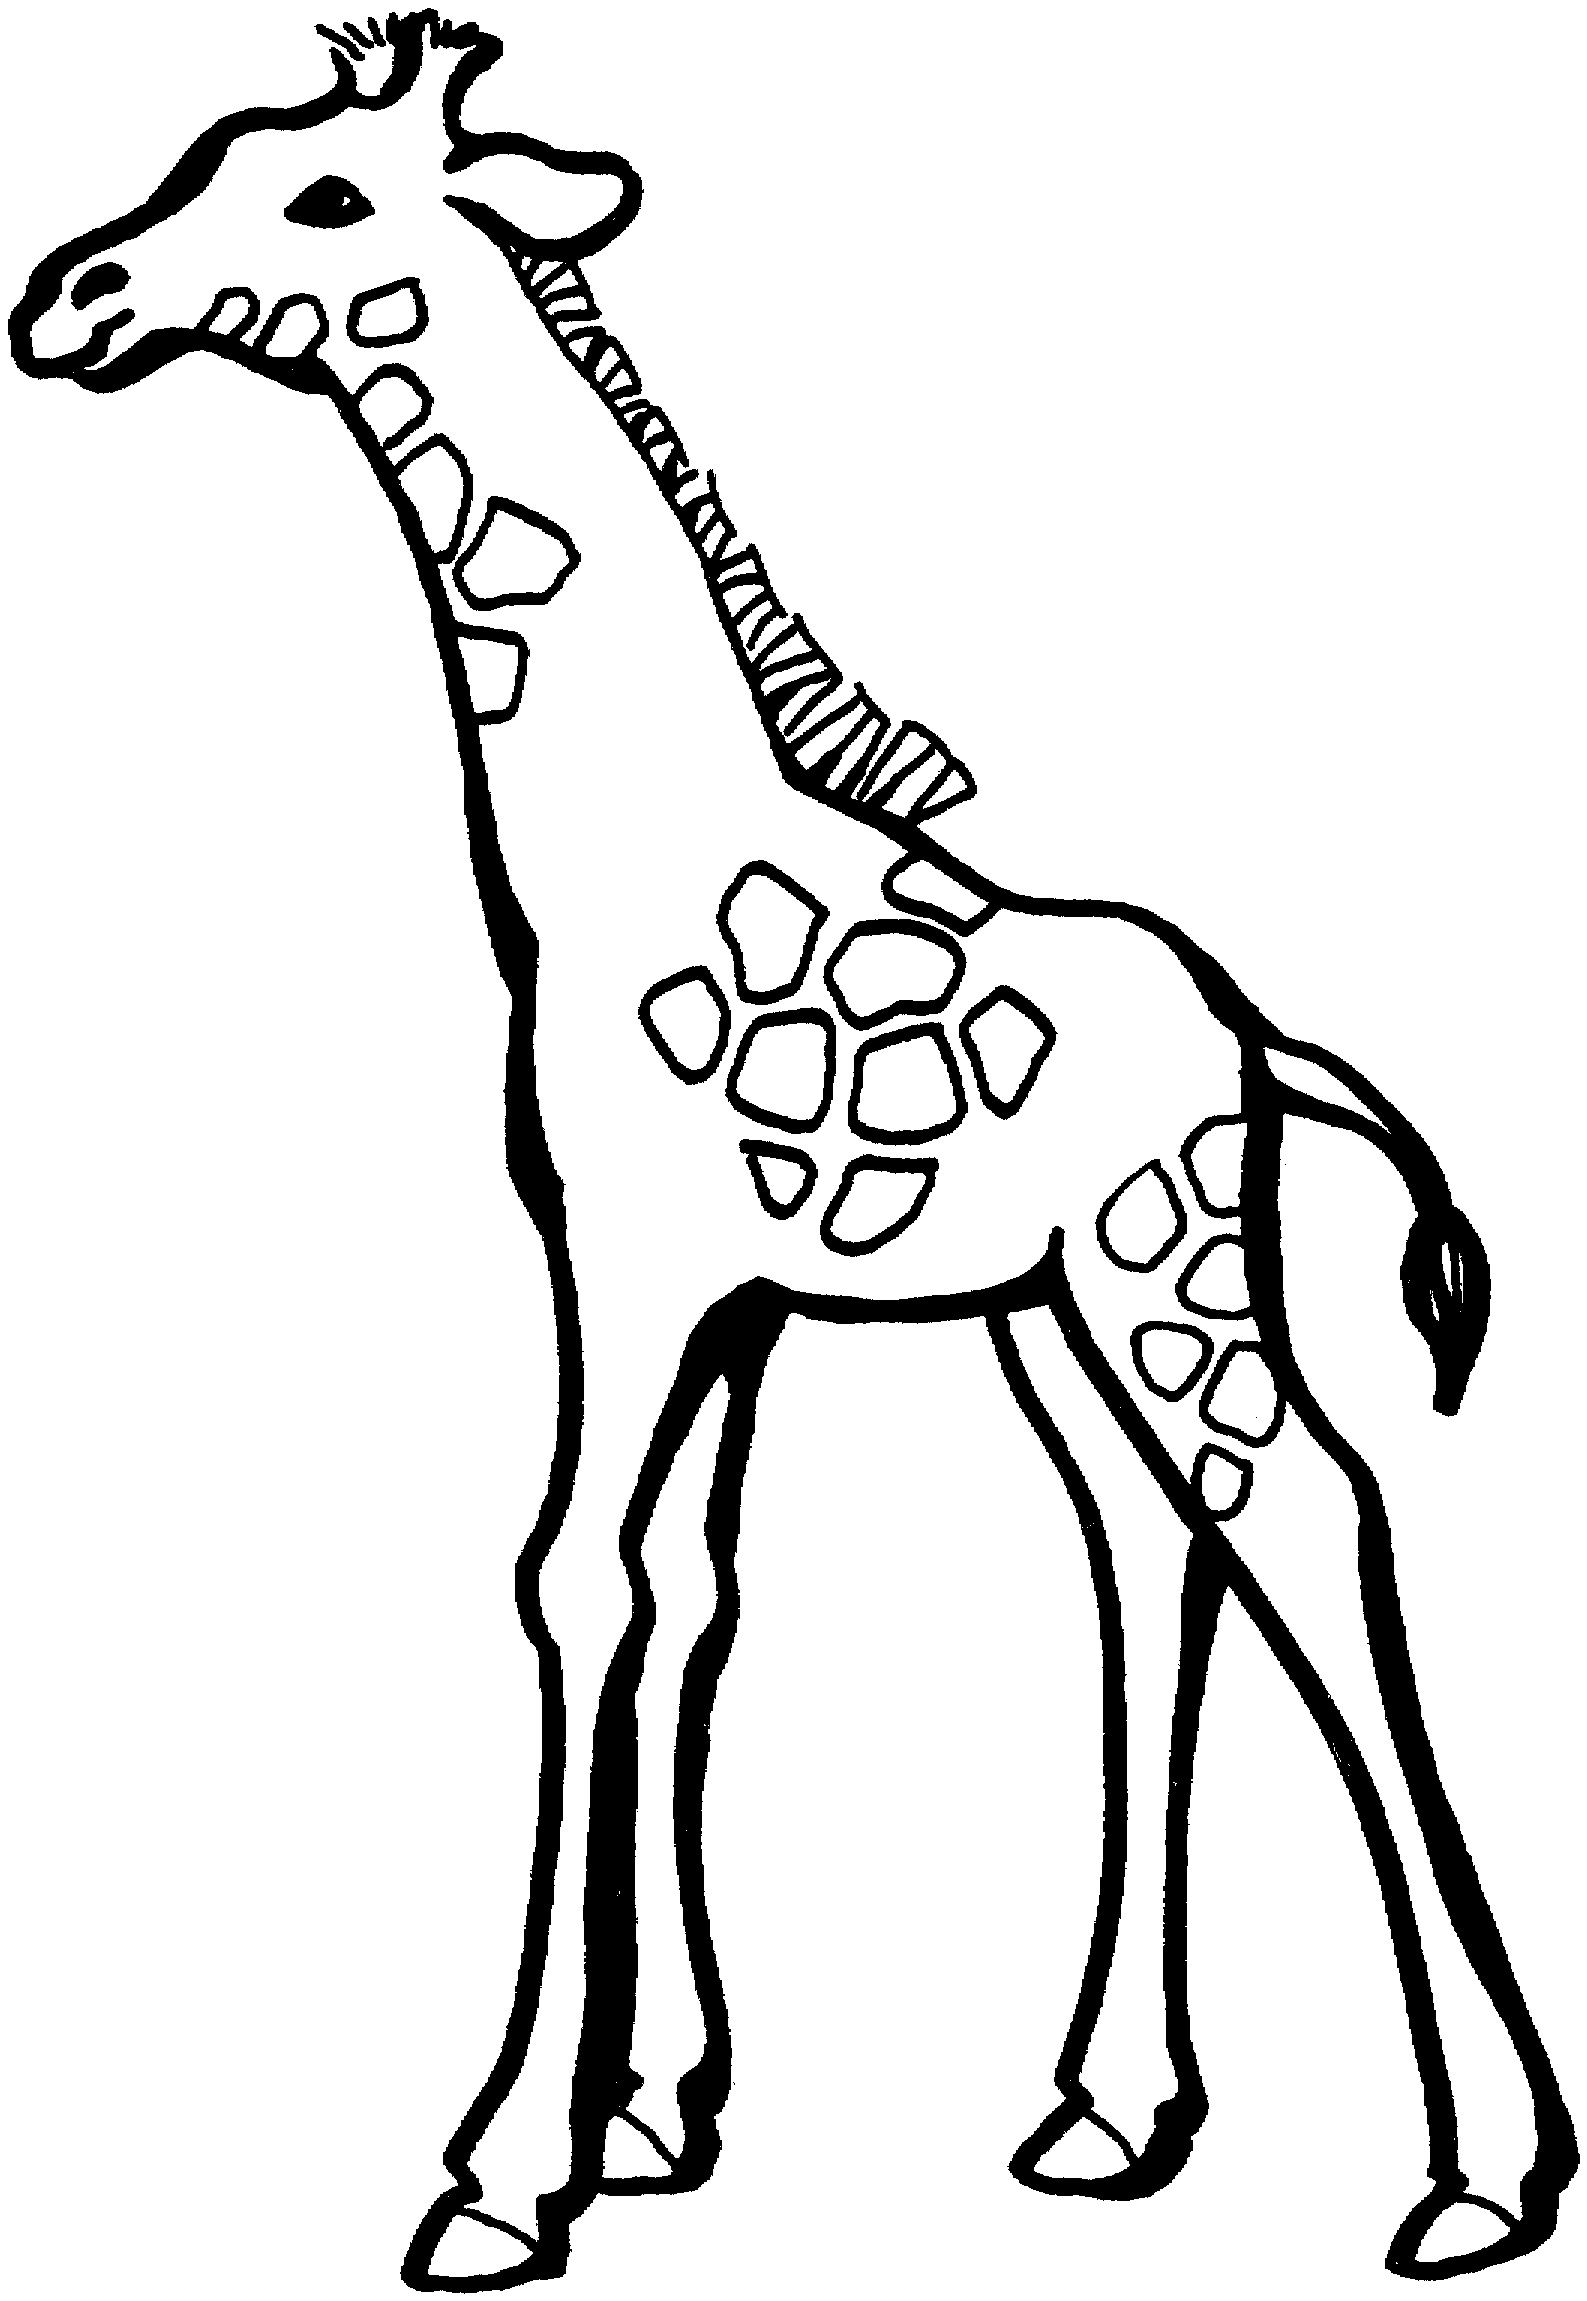 Giraffe Coloring Pages Printable | colorbook | Pinterest